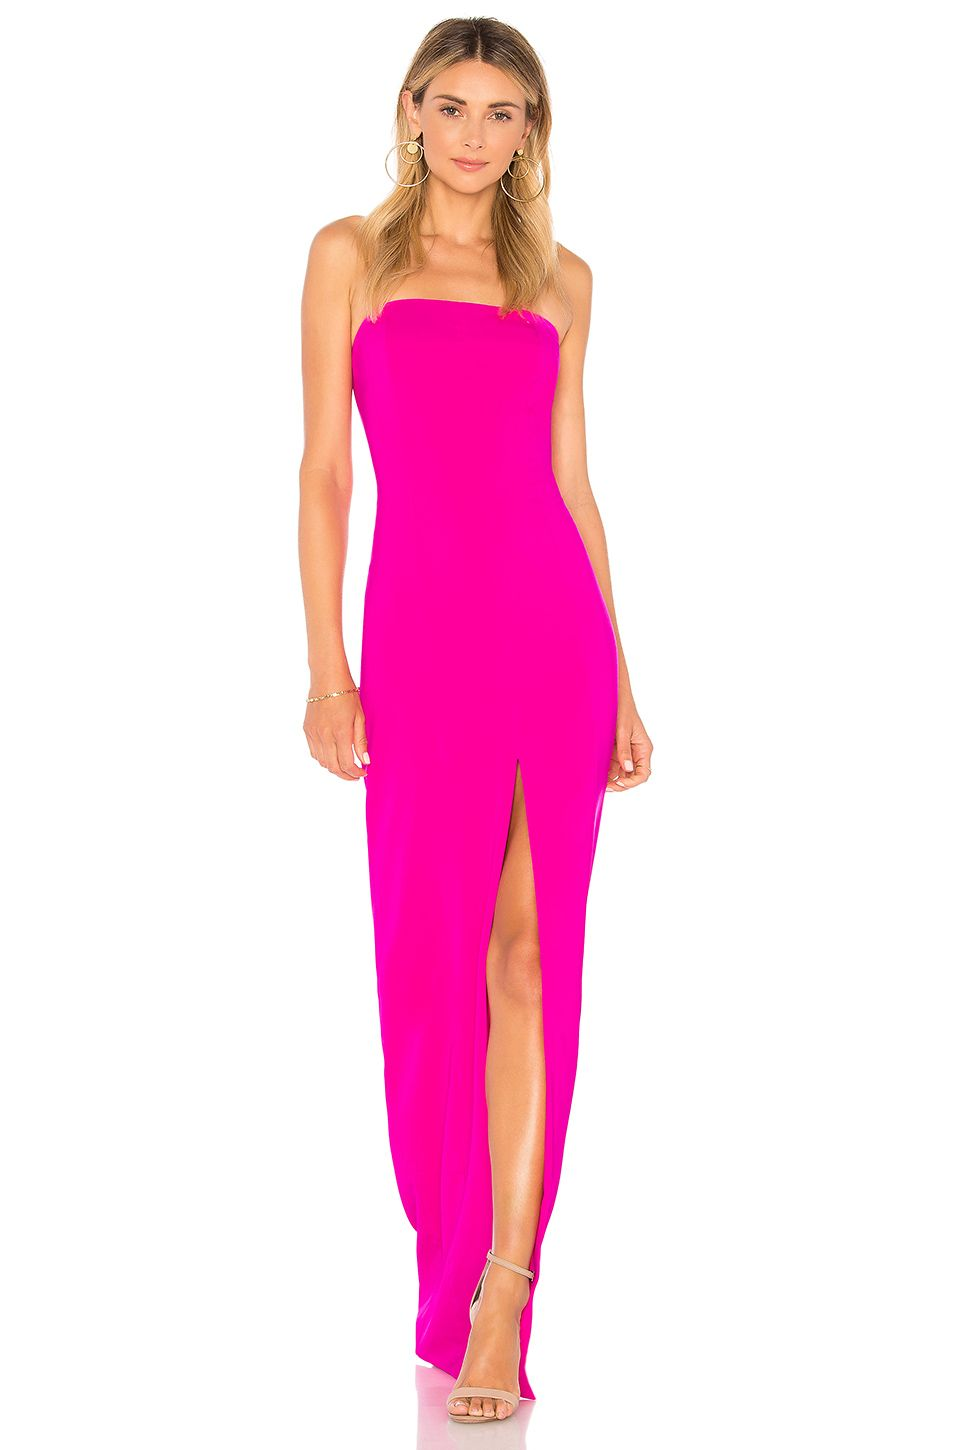 294a2c9a7e22d Jay Godfrey Martell Gown in Fuchsia | STYLE-SWOONS in 2019 | Jay ...